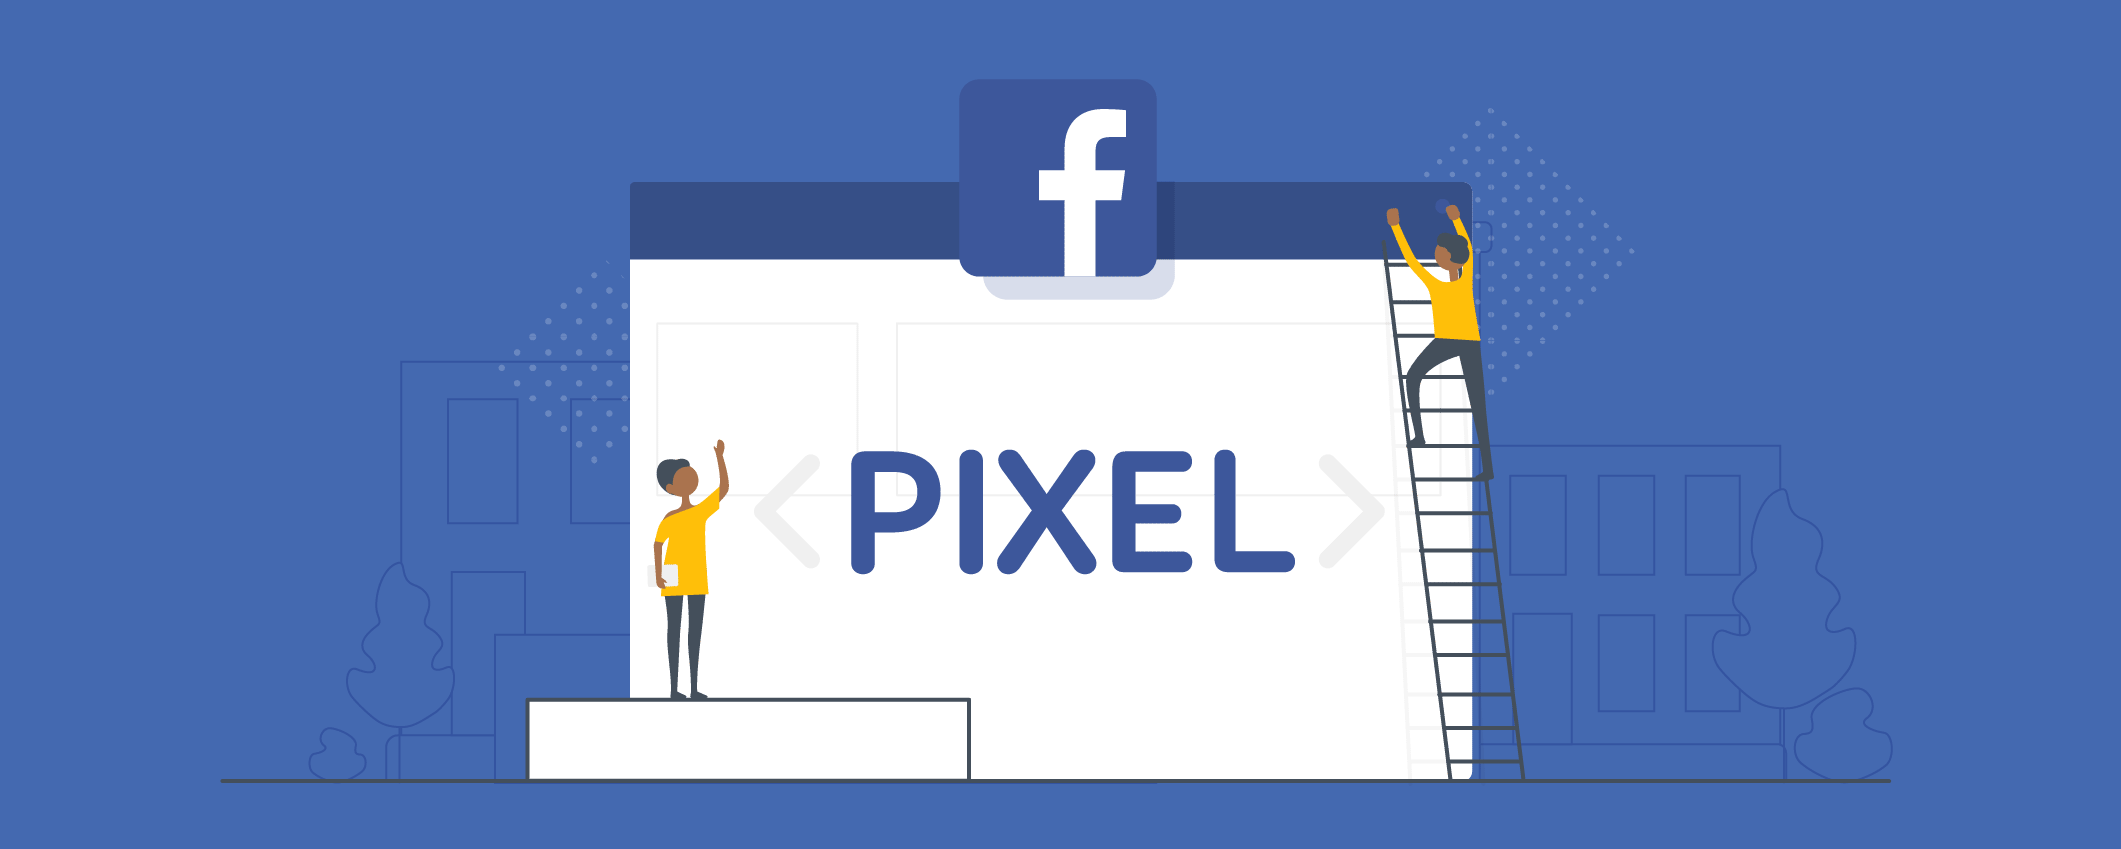 Facebook Pixel For a Restaurant Business